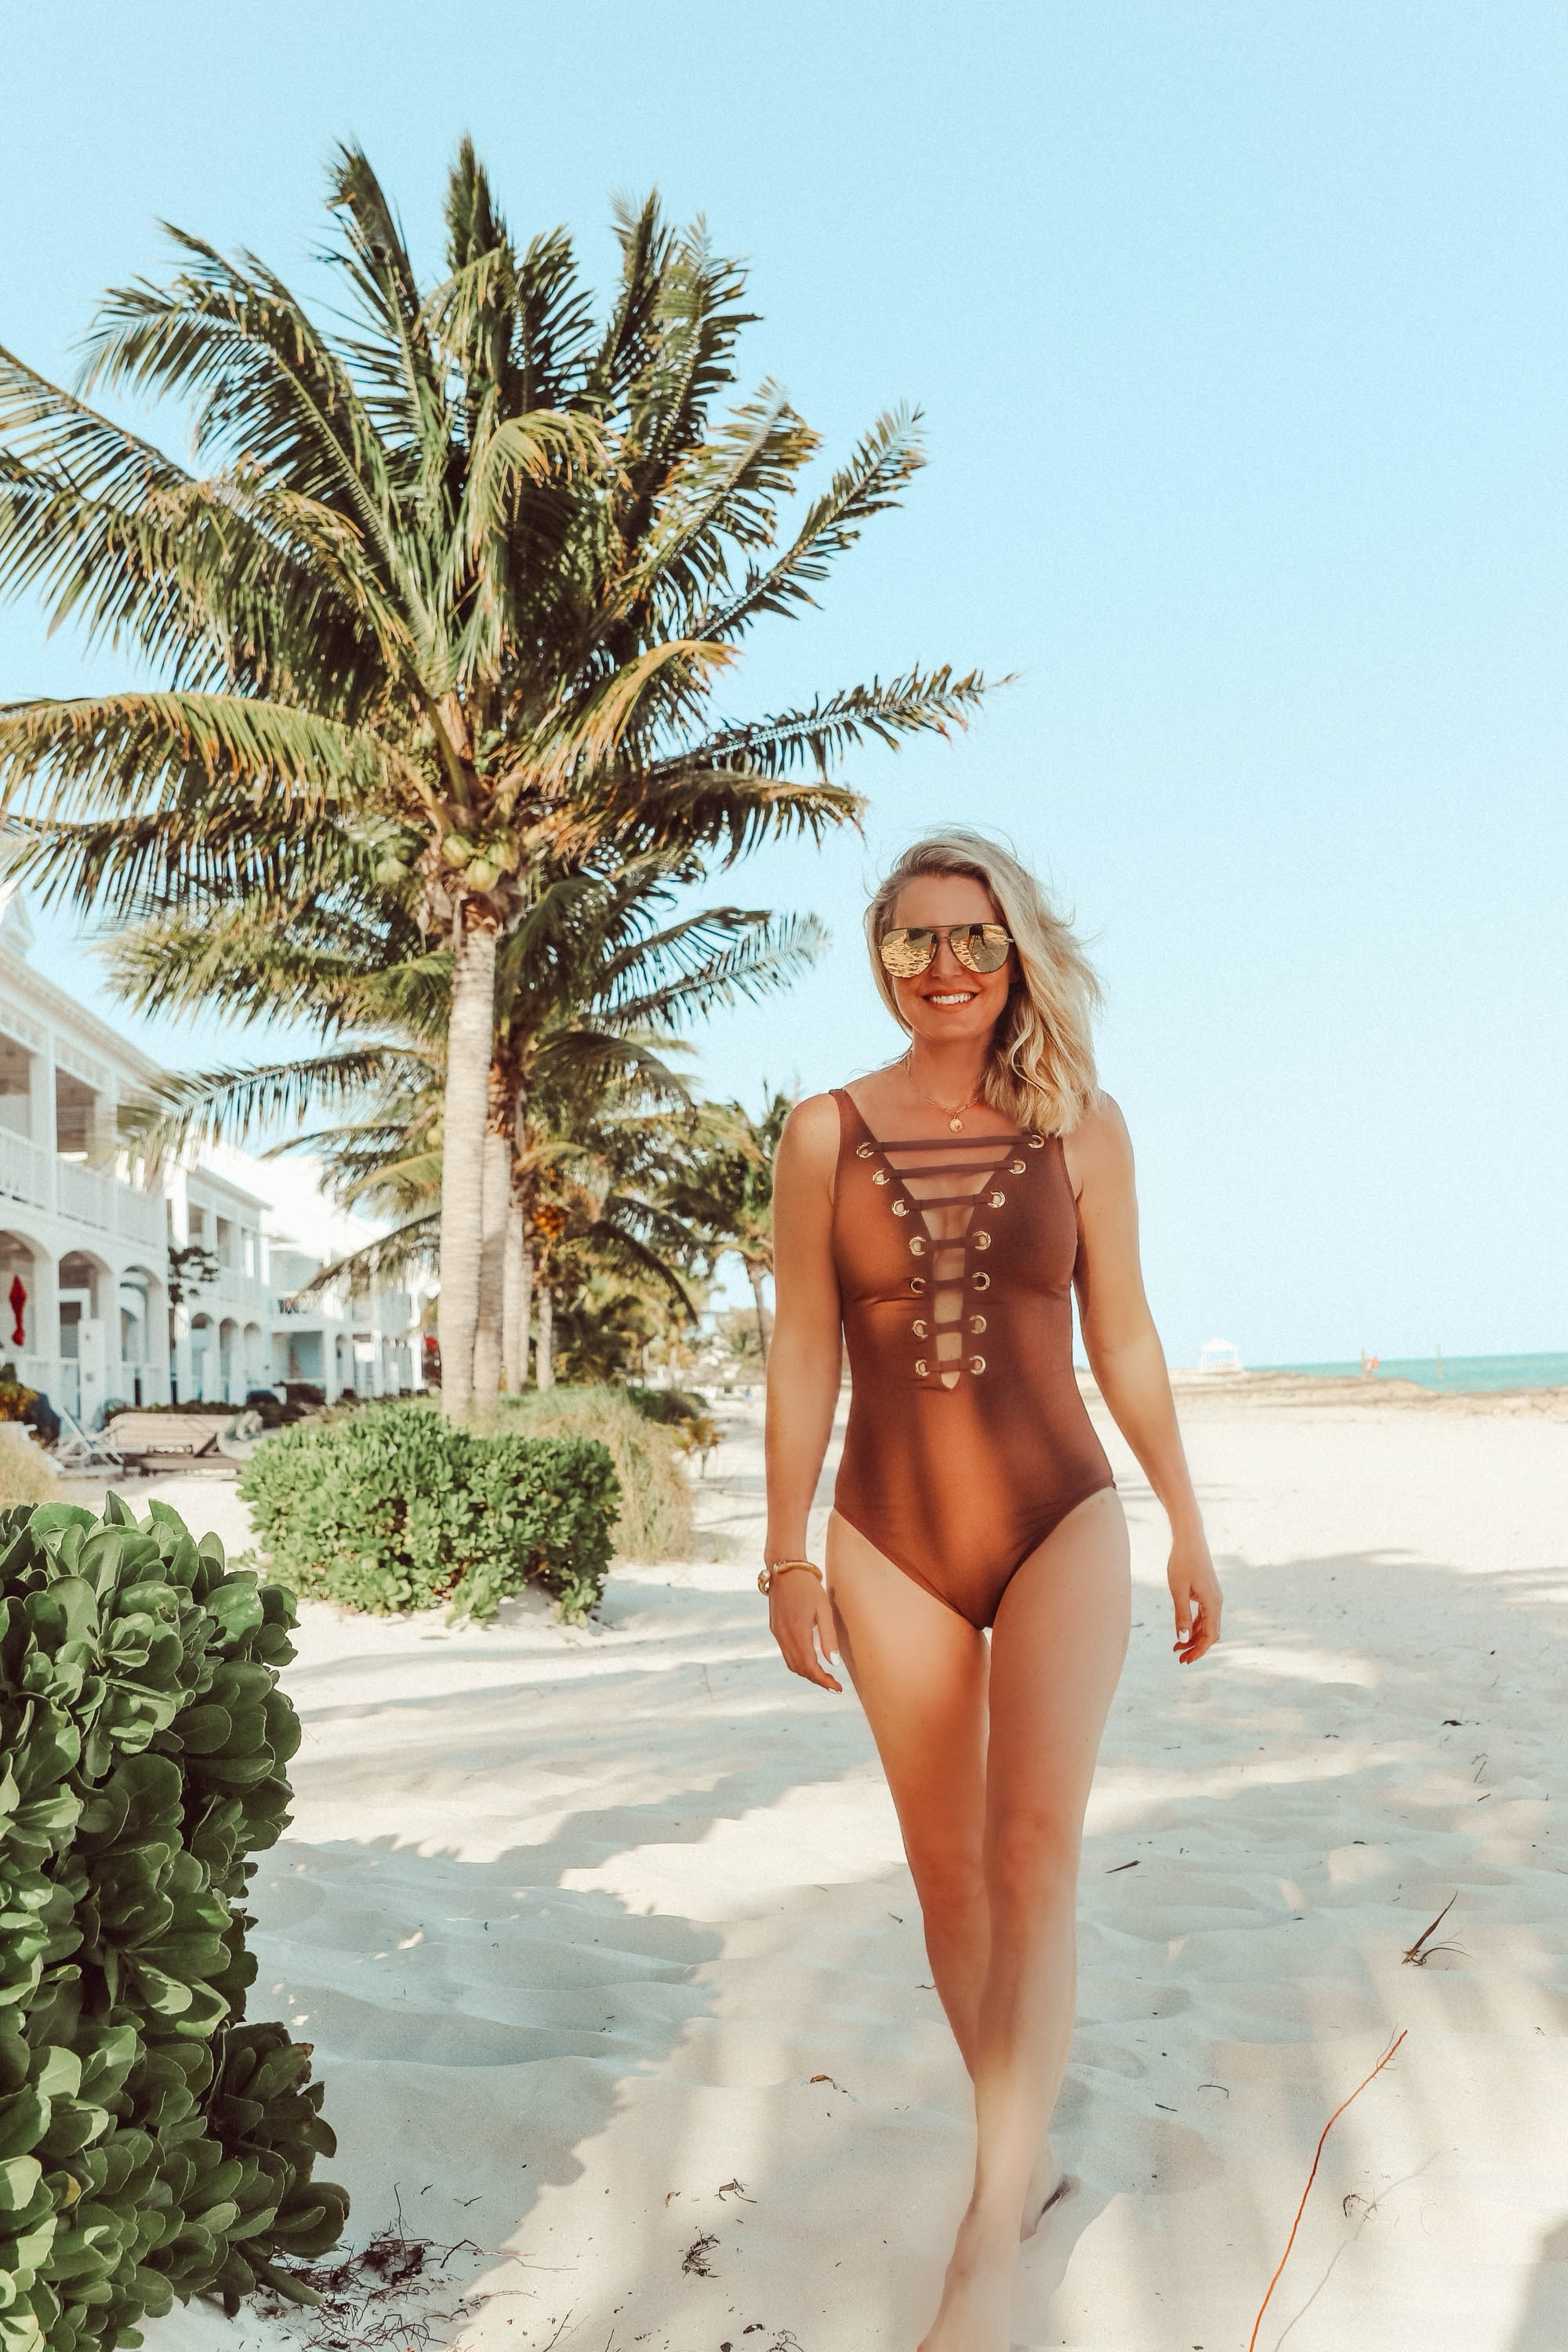 Flattering Swimsuits, Fashion blogger Erin Busbee of BusbeeStyle.com wearing a brown strappy one-piece swimsuit by Bleu Rod Beattie in the Bahamas